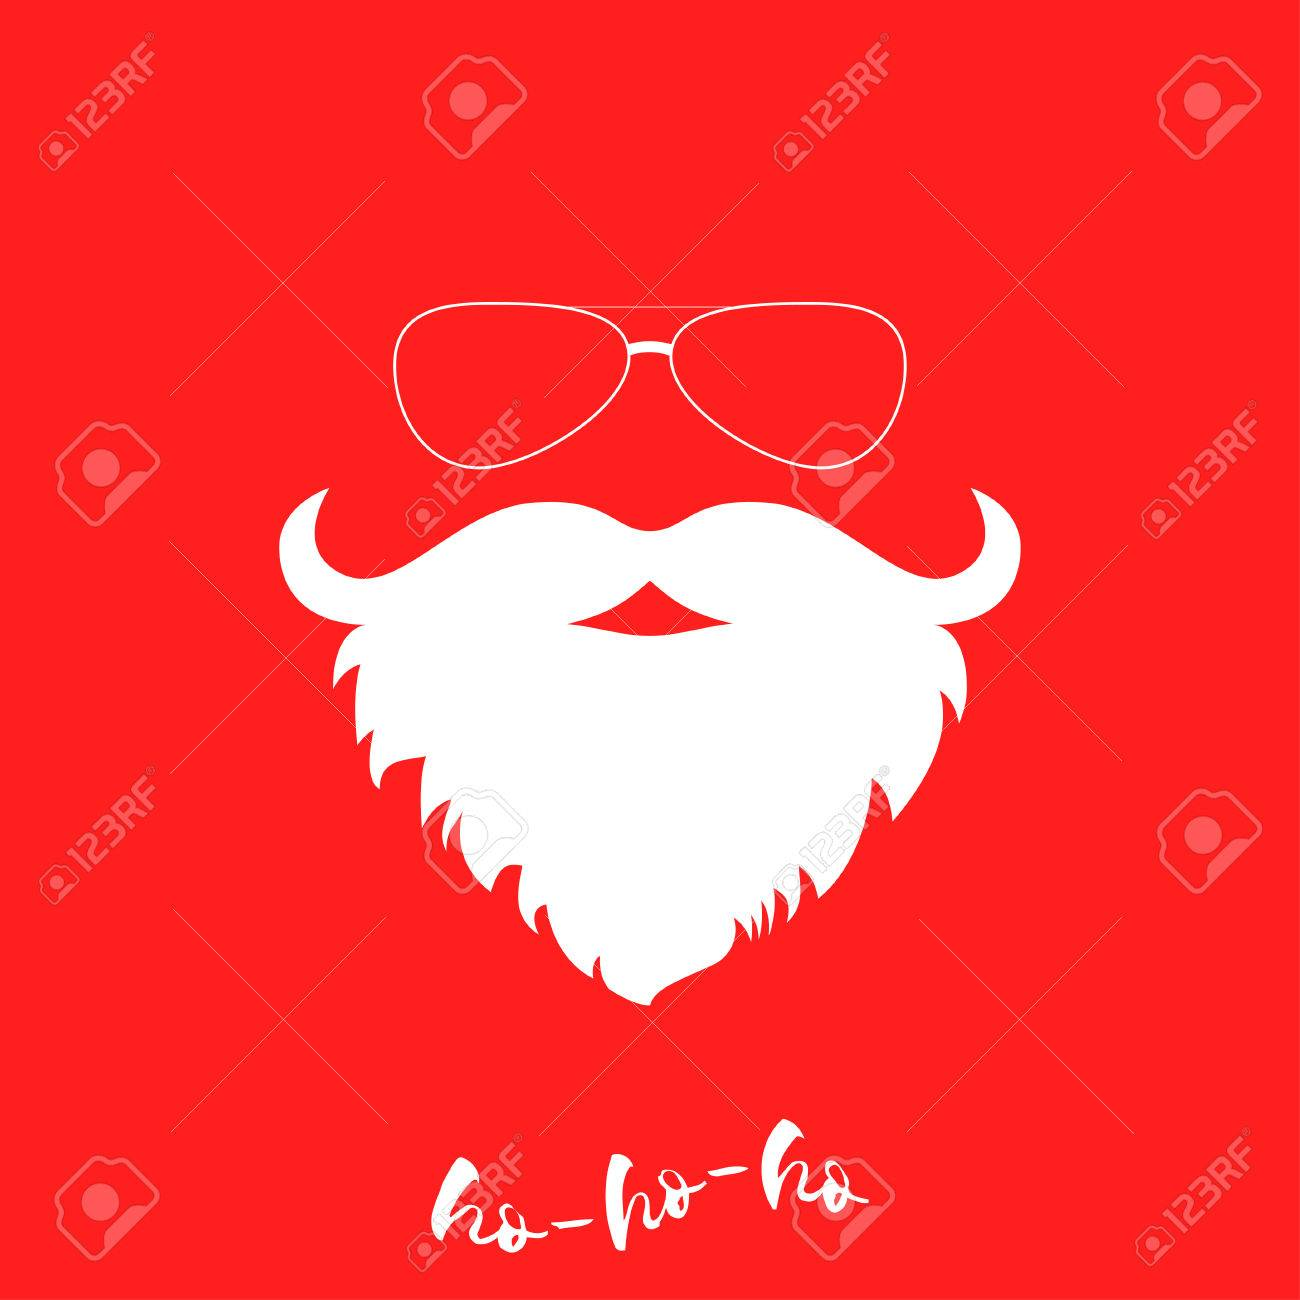 Santa clauss luxuriant white beard and sunglasses template santa clauss luxuriant white beard and sunglasses template for christmas greeting card christmas background maxwellsz